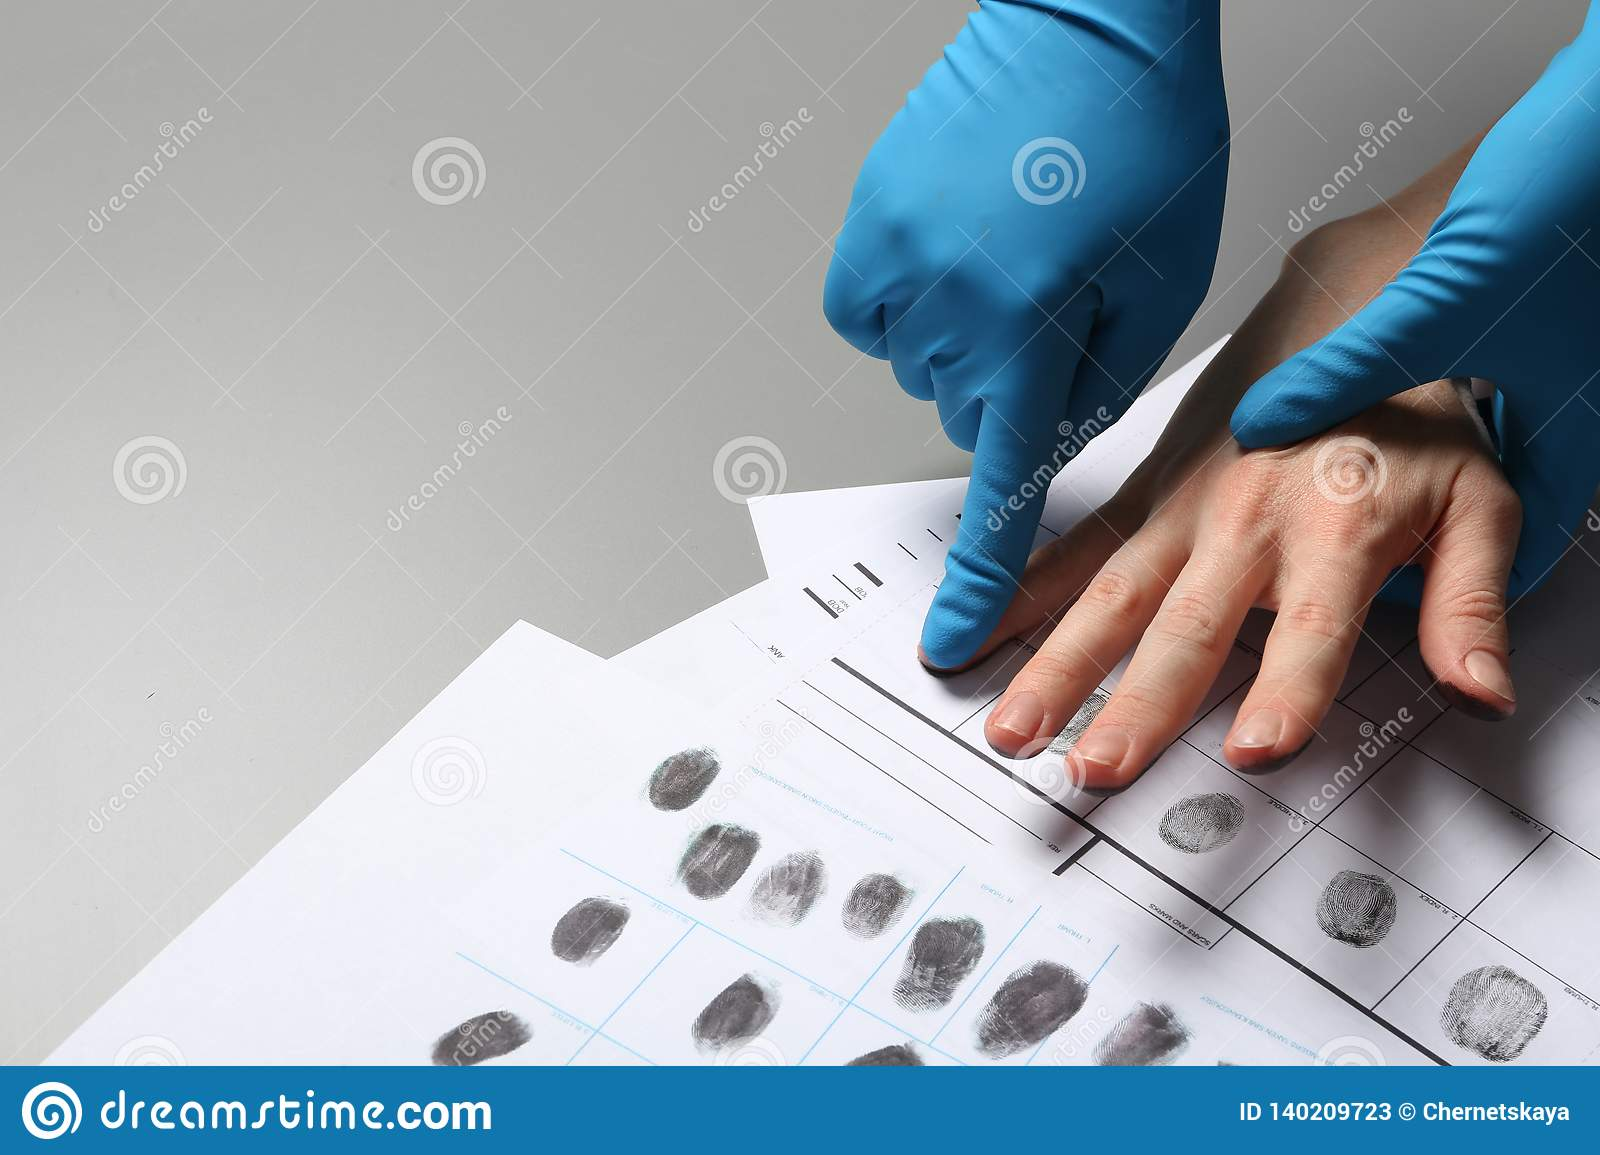 investigator-taking-fingerprints-suspect-grey-table-closeup-space-text-investigator-taking-fingerprints-suspect-140209723